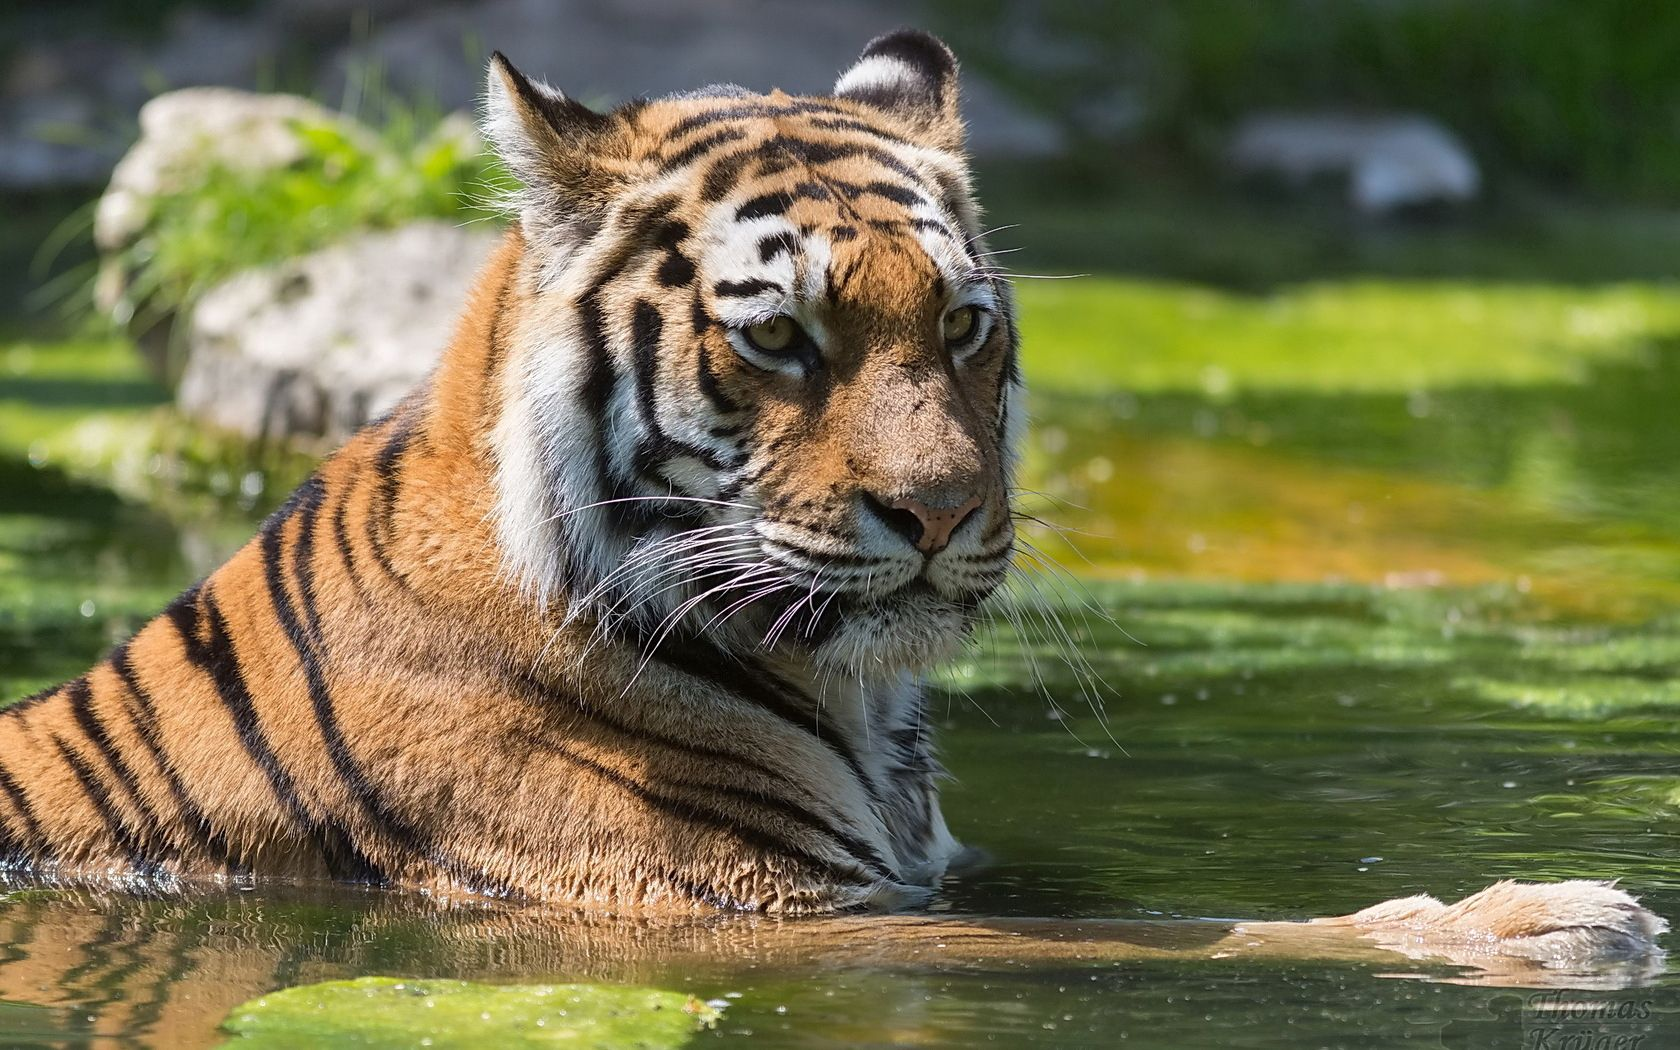 94285 download wallpaper Animals, Tiger, Big Cat, Striped, Muzzle, Predator, Water, To Swim, Swim screensavers and pictures for free